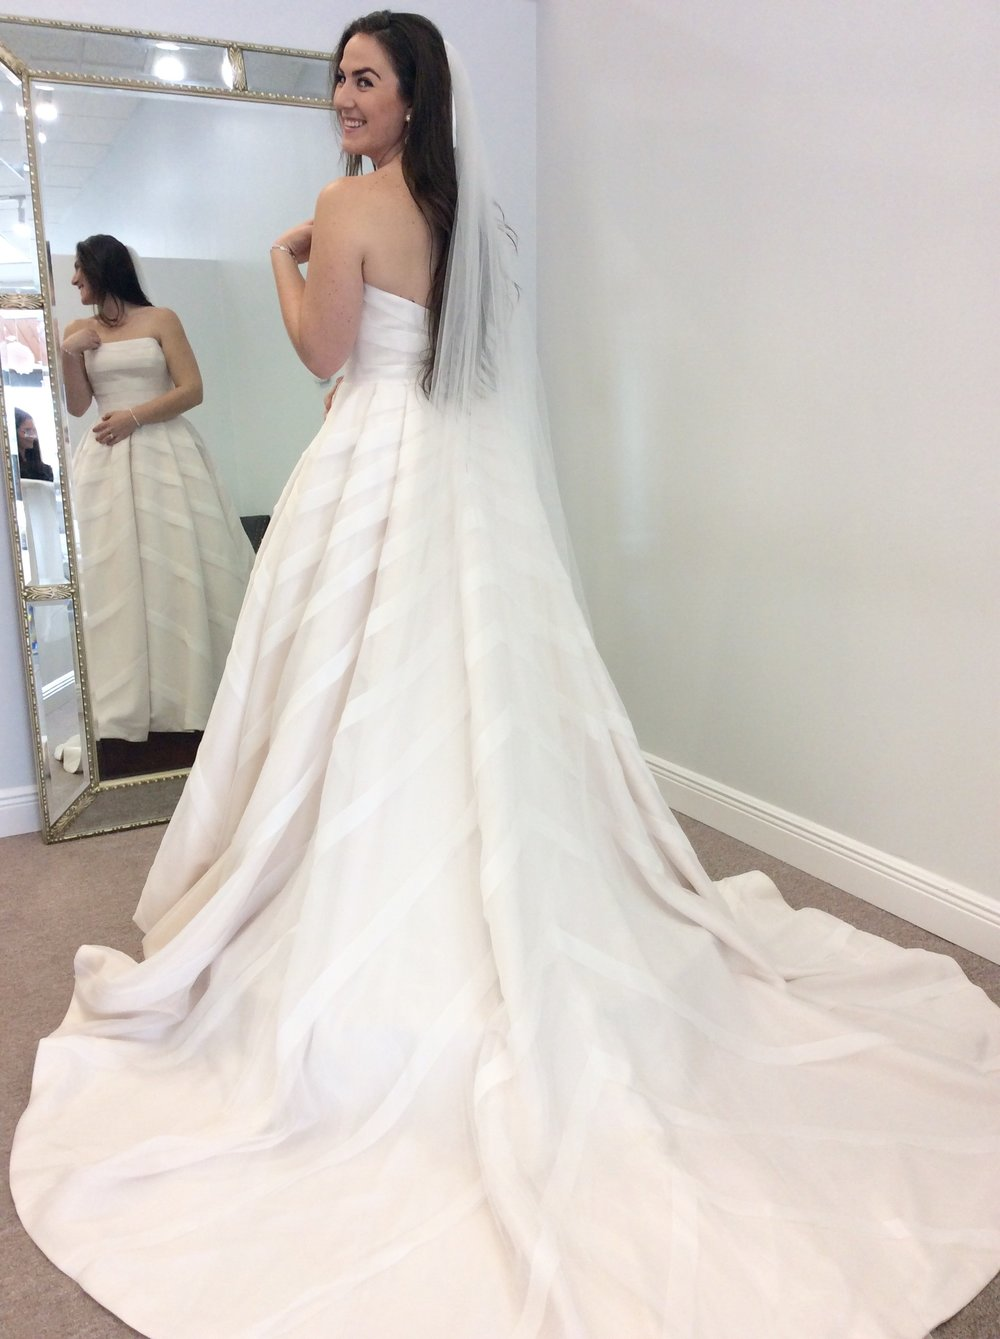 80ca74cfbe80 Many times a bride is afraid of the veil blocking the view of the dress  going down the aisle. A plain tulle veil will not obstruct the view and  most ...